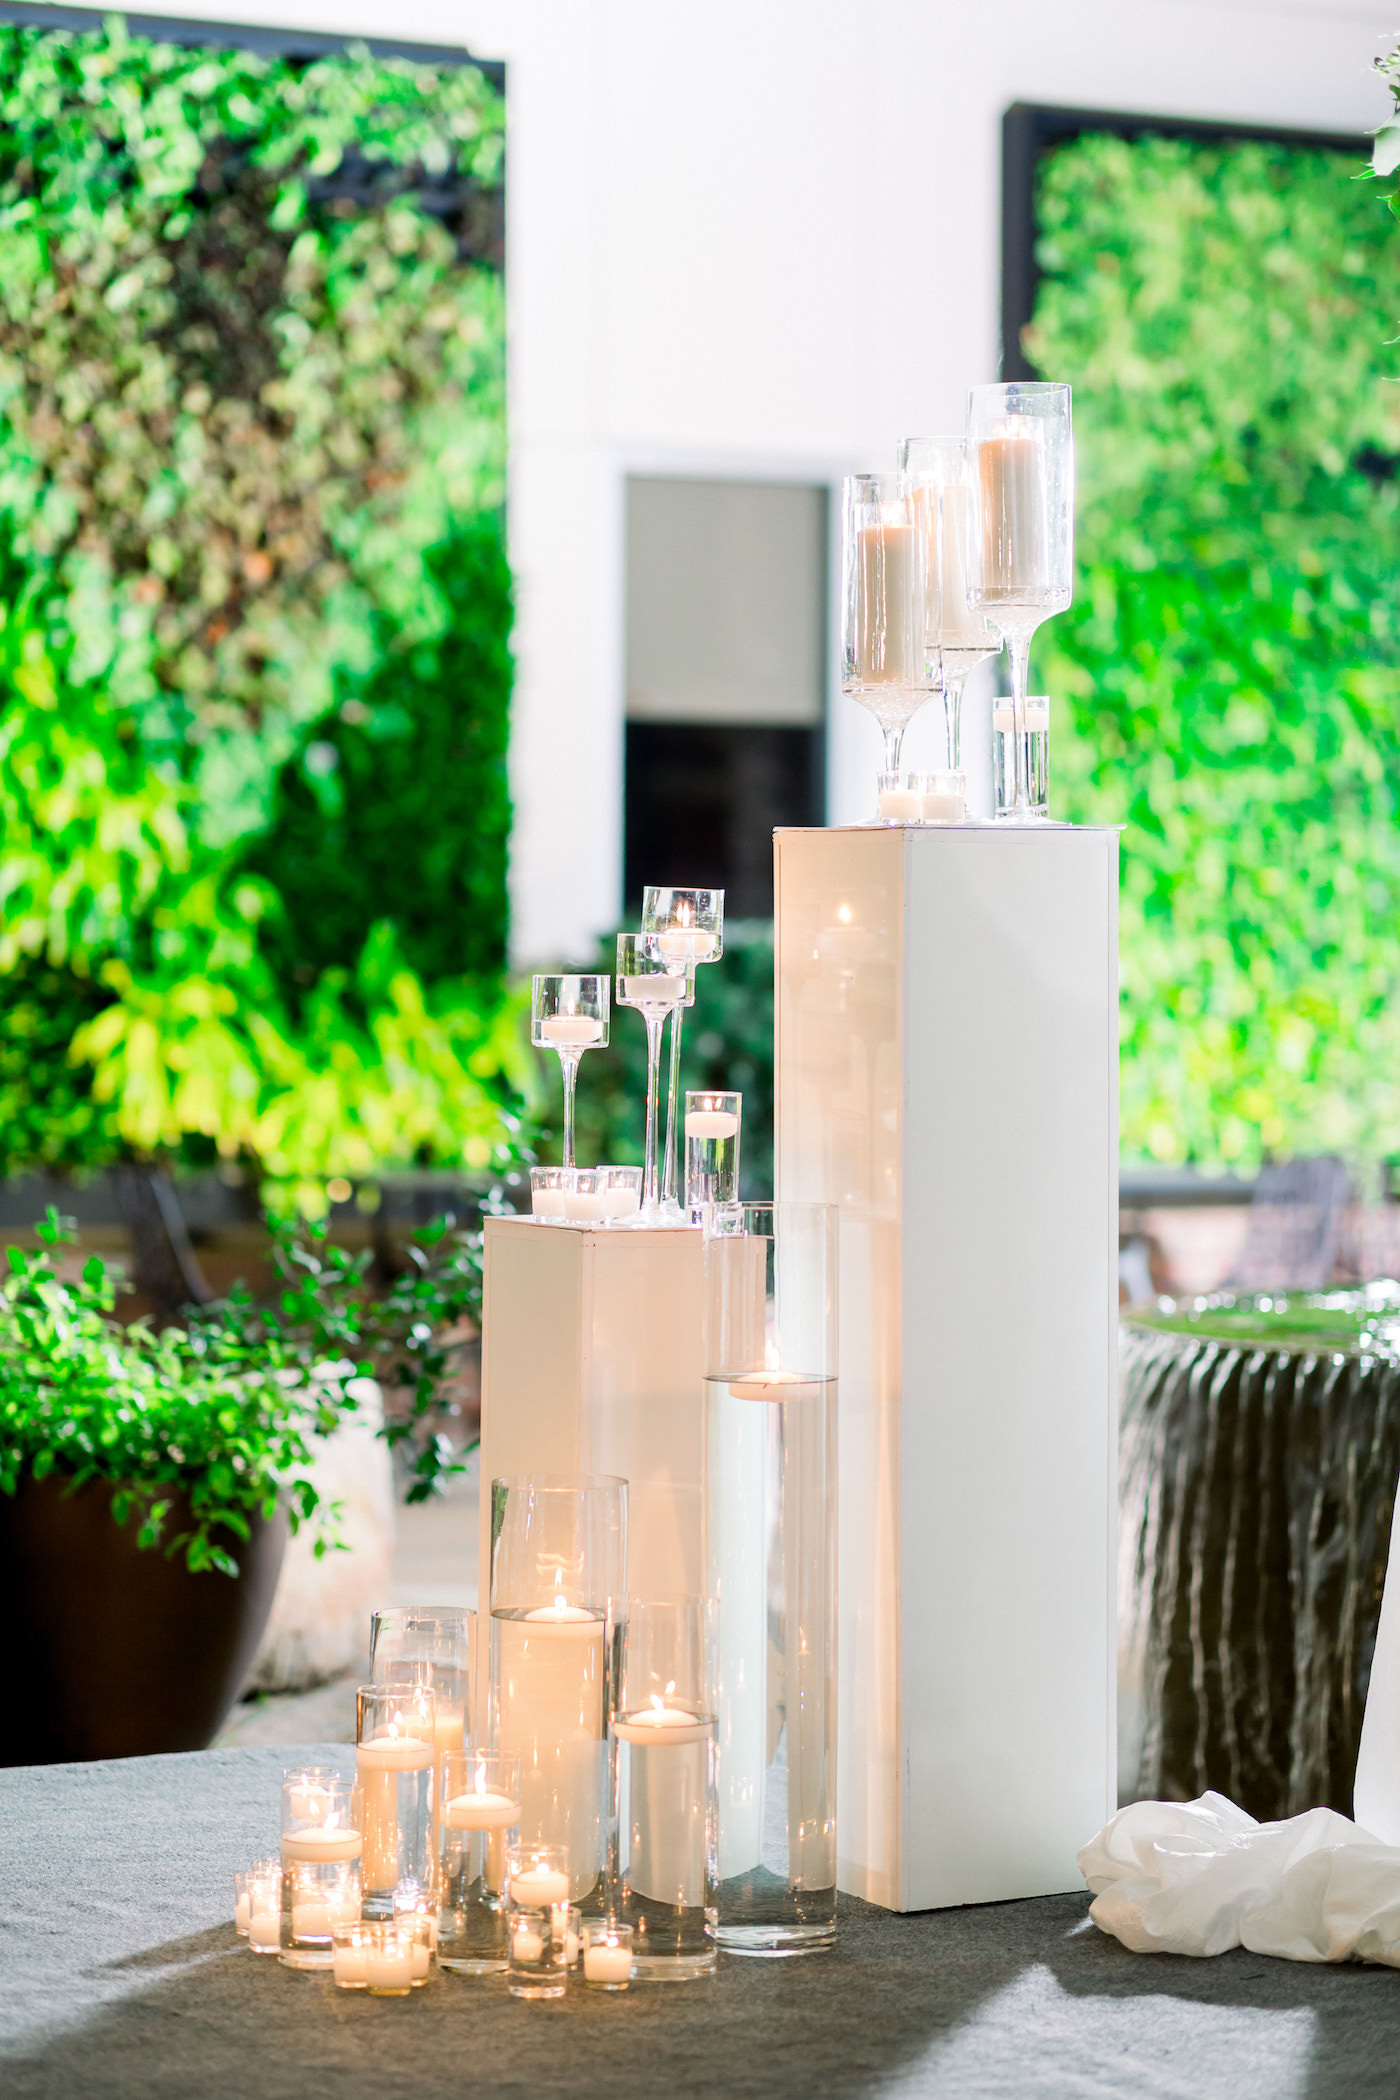 Elegant Classic Wedding Ceremony Decor, Tall White Pedestals with Floating Candle Vases | Wedding Photographer Shauna and Jordon Photography | Tampa Wedding Planner UNIQUE Weddings + Events